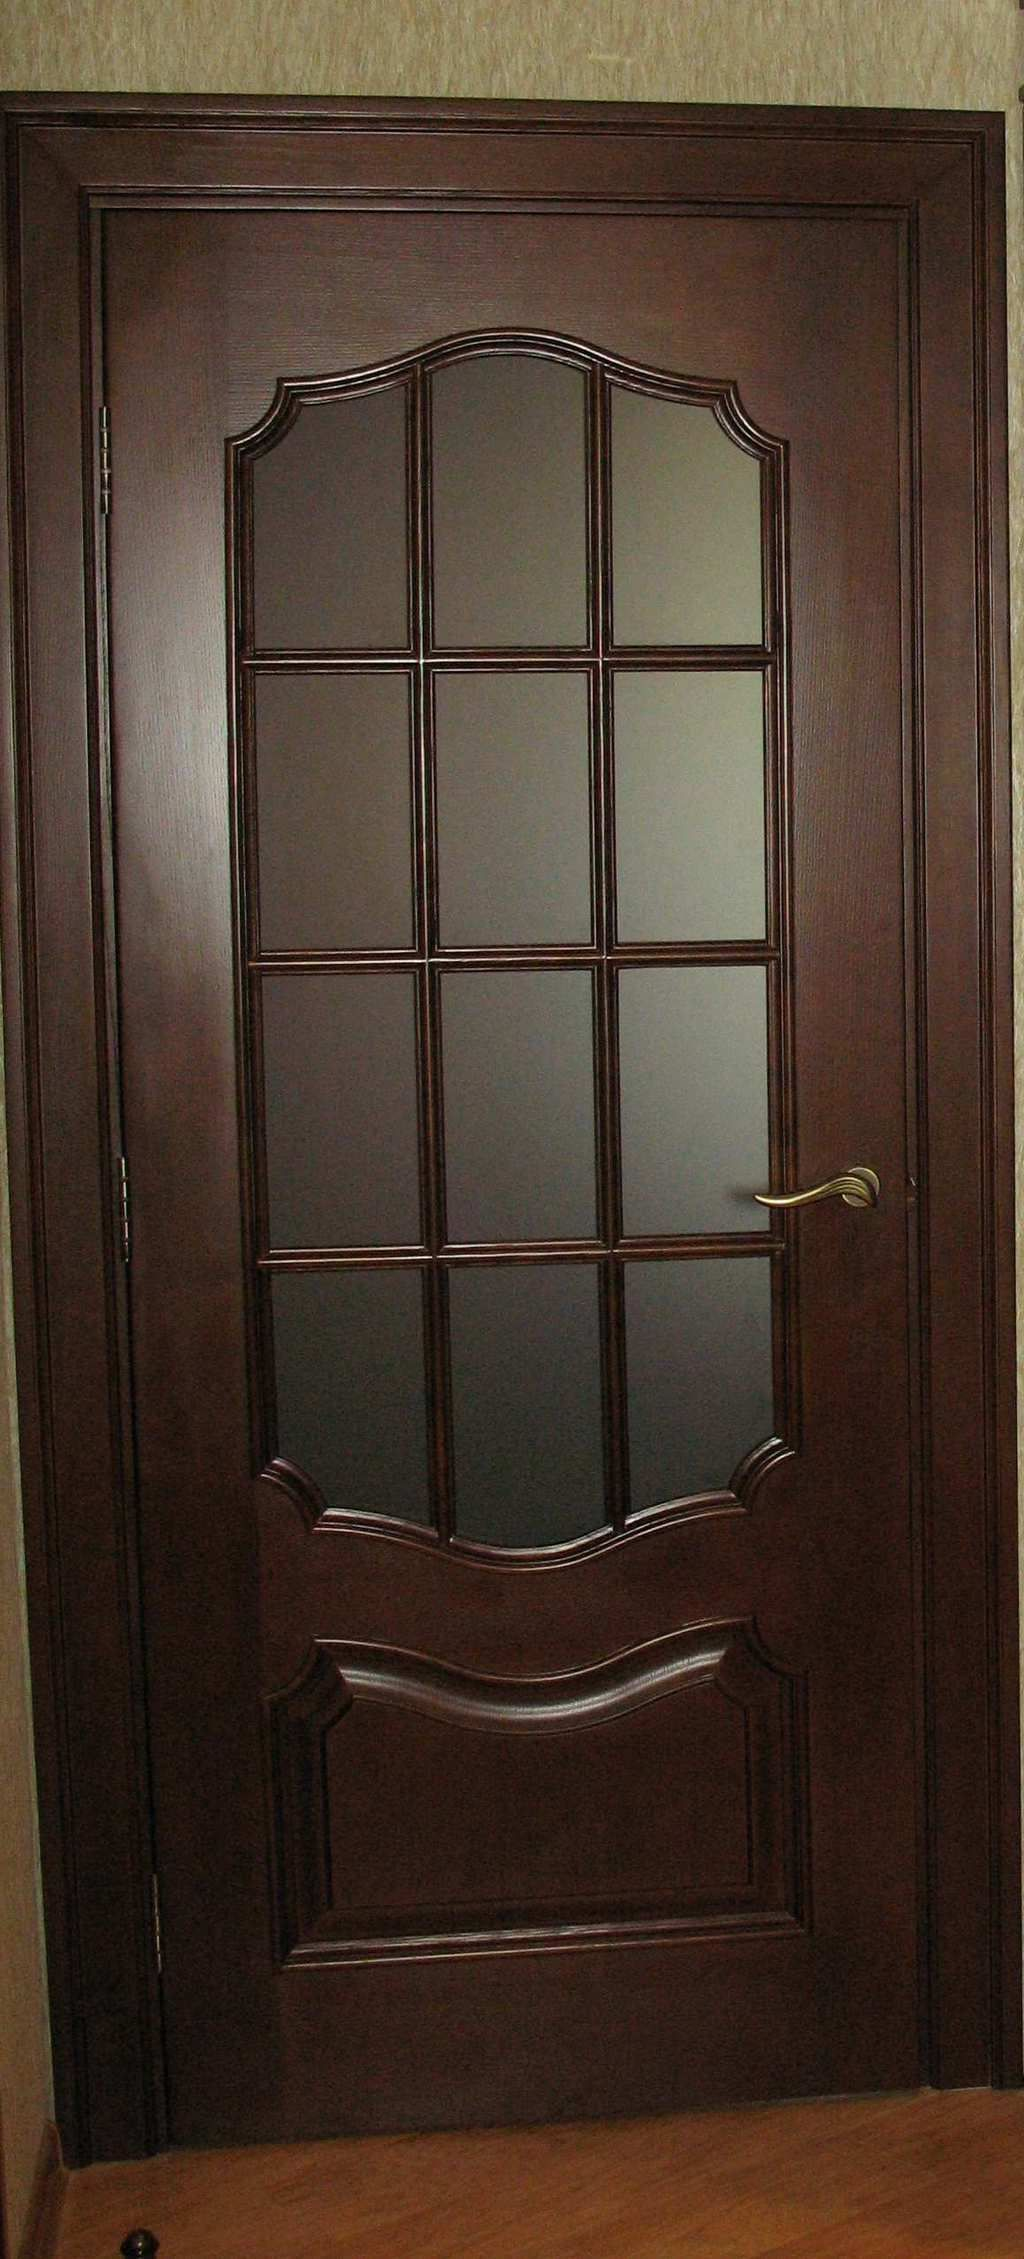 Wooden interior door in dark colors